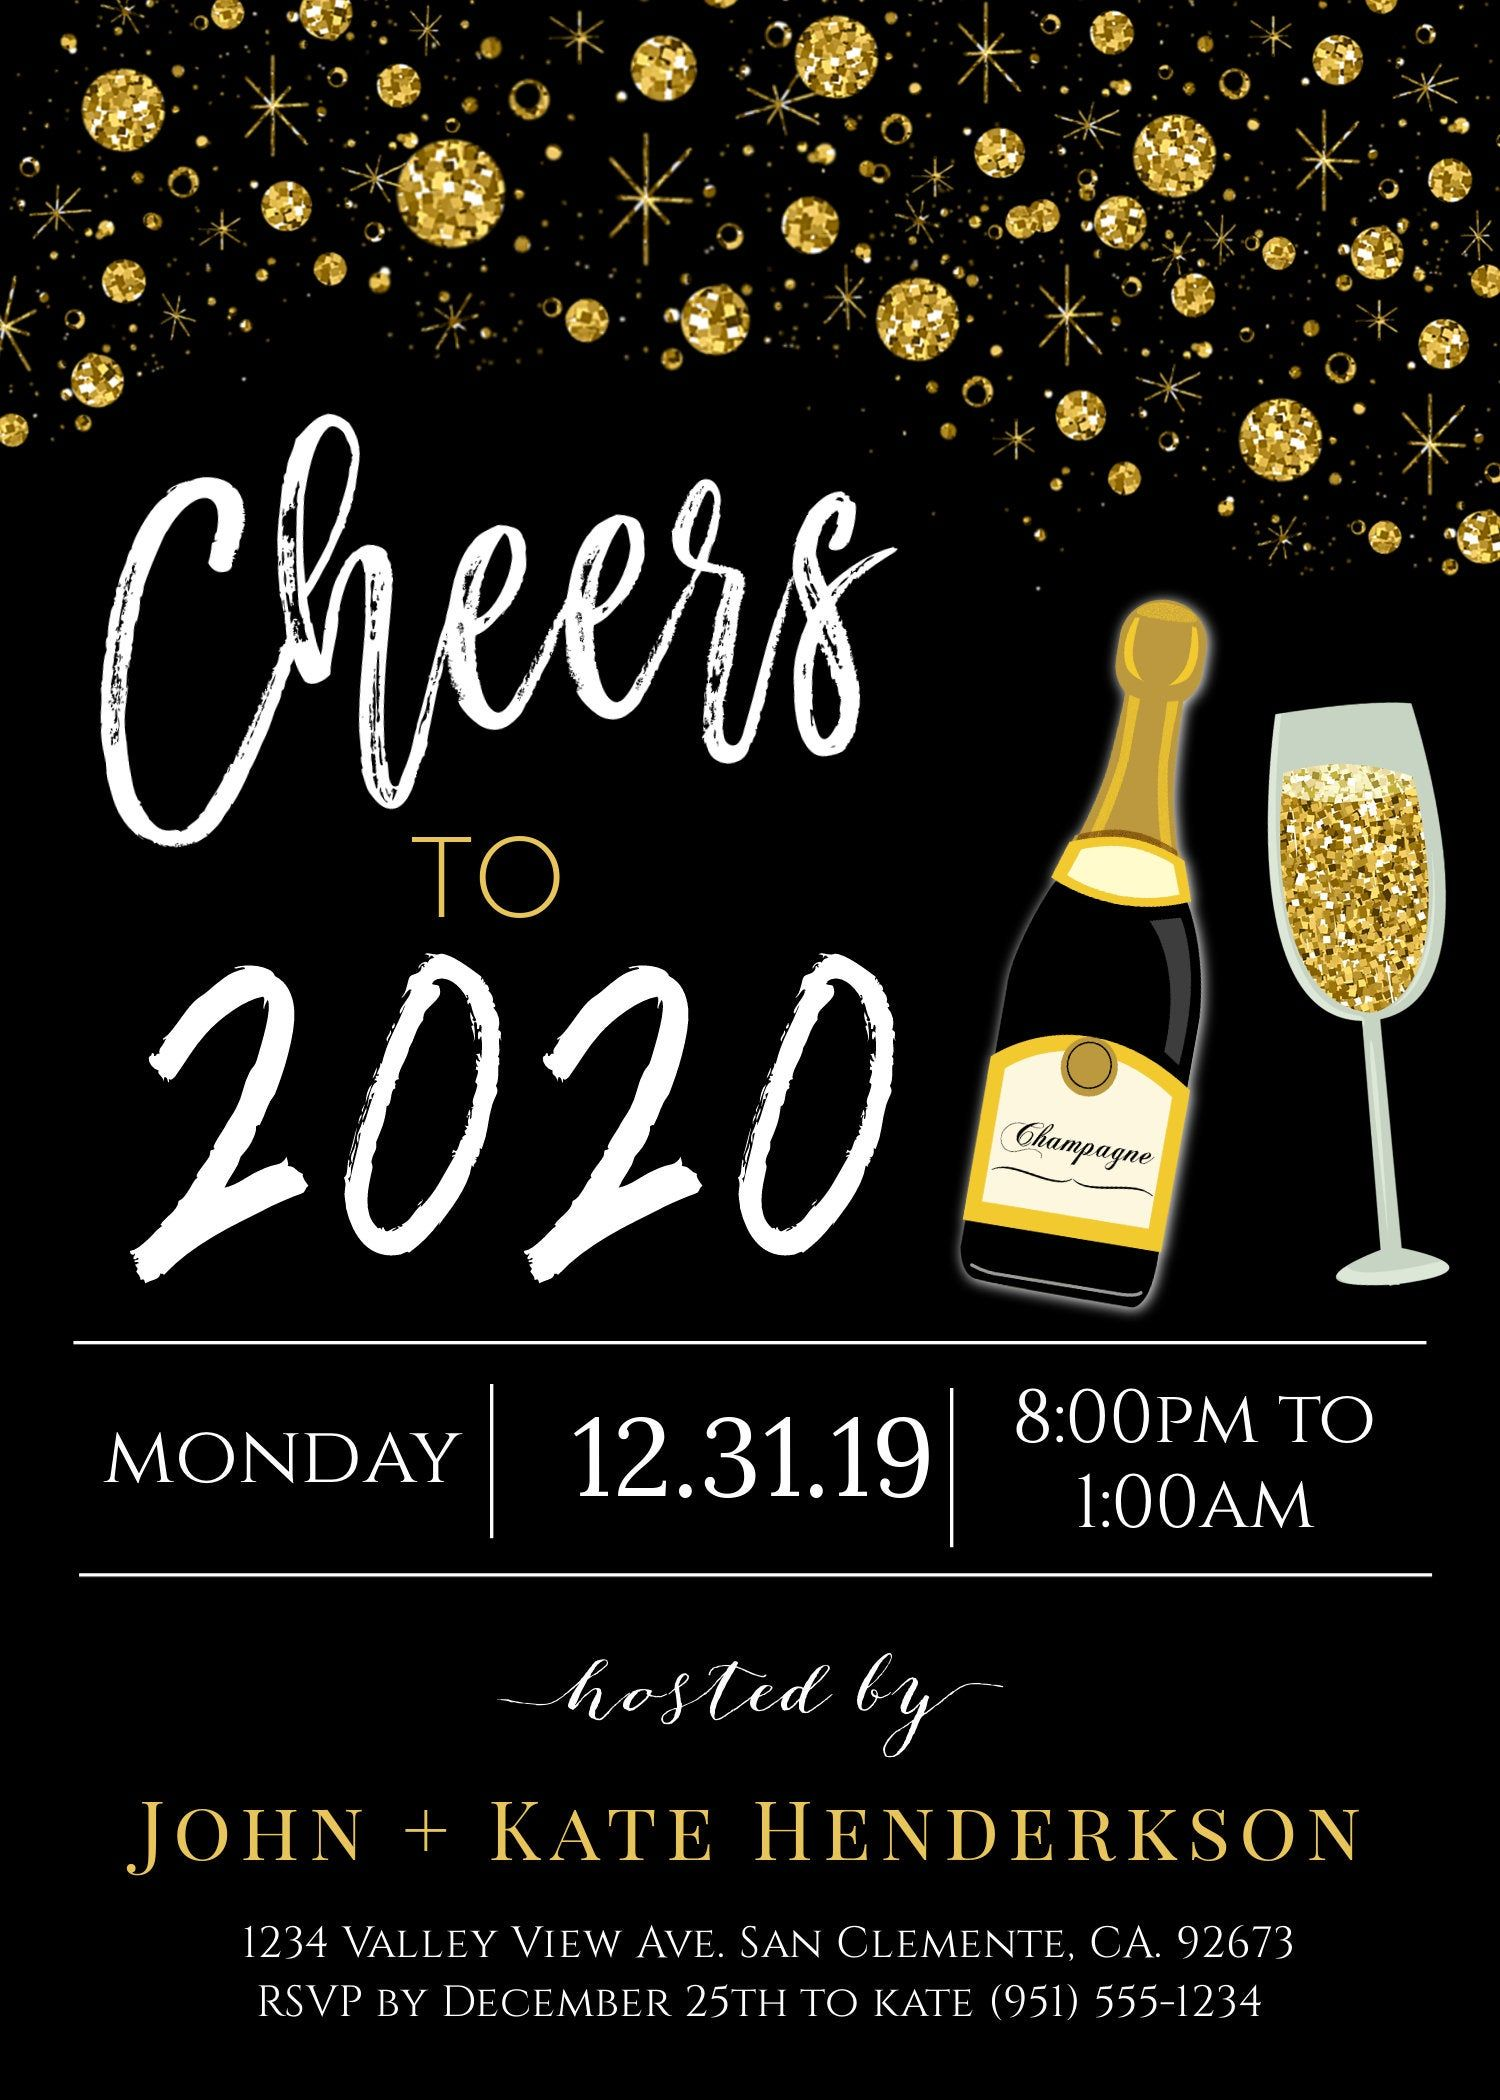 Cheers To 2020 Invite New Year S Eve Party Invitation Black And Gold Printable Template Gold Black New Year Invite Party Downloadable New Years Eve Party New Years Eve Newyear